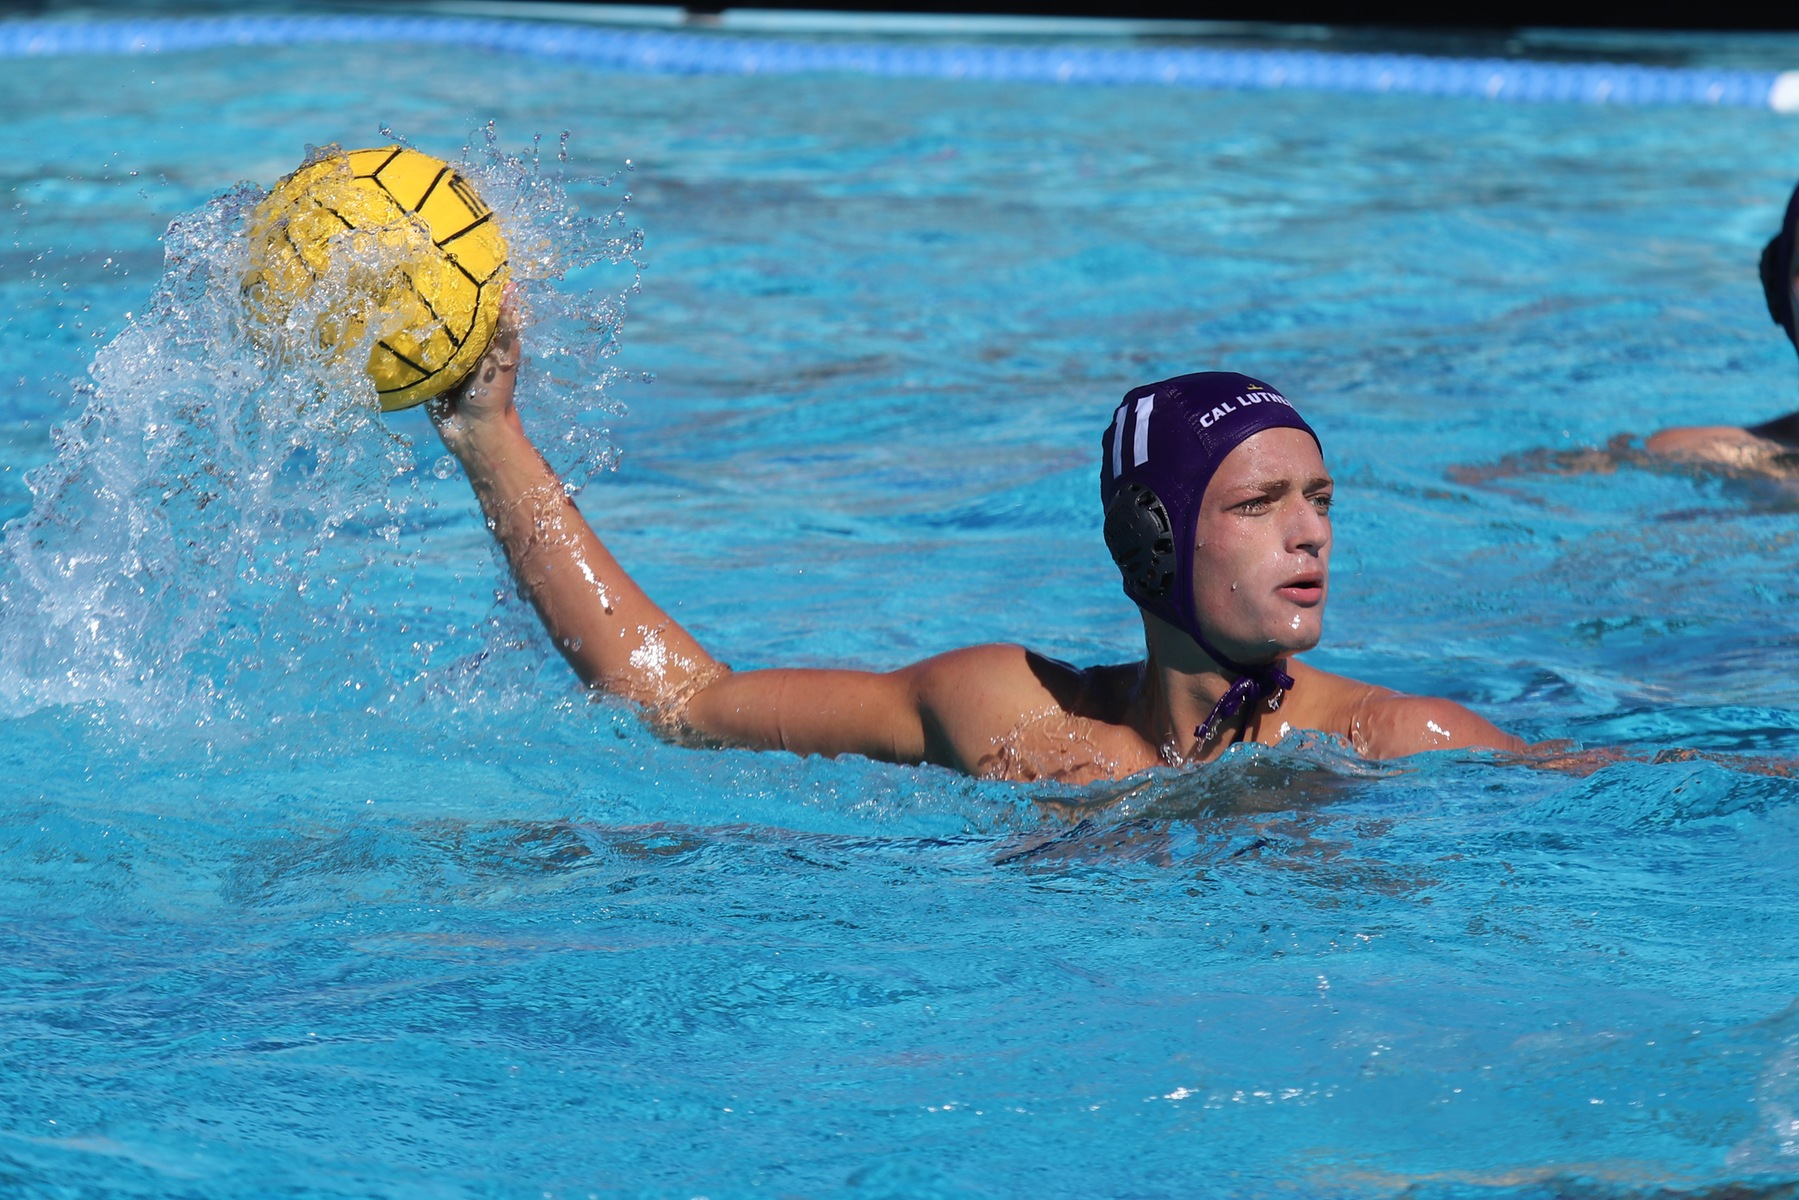 Dillon Goldsmith scored three goals in two wins on Homecoming for the Kingsmen. (Credit: Arianna Macaluso)